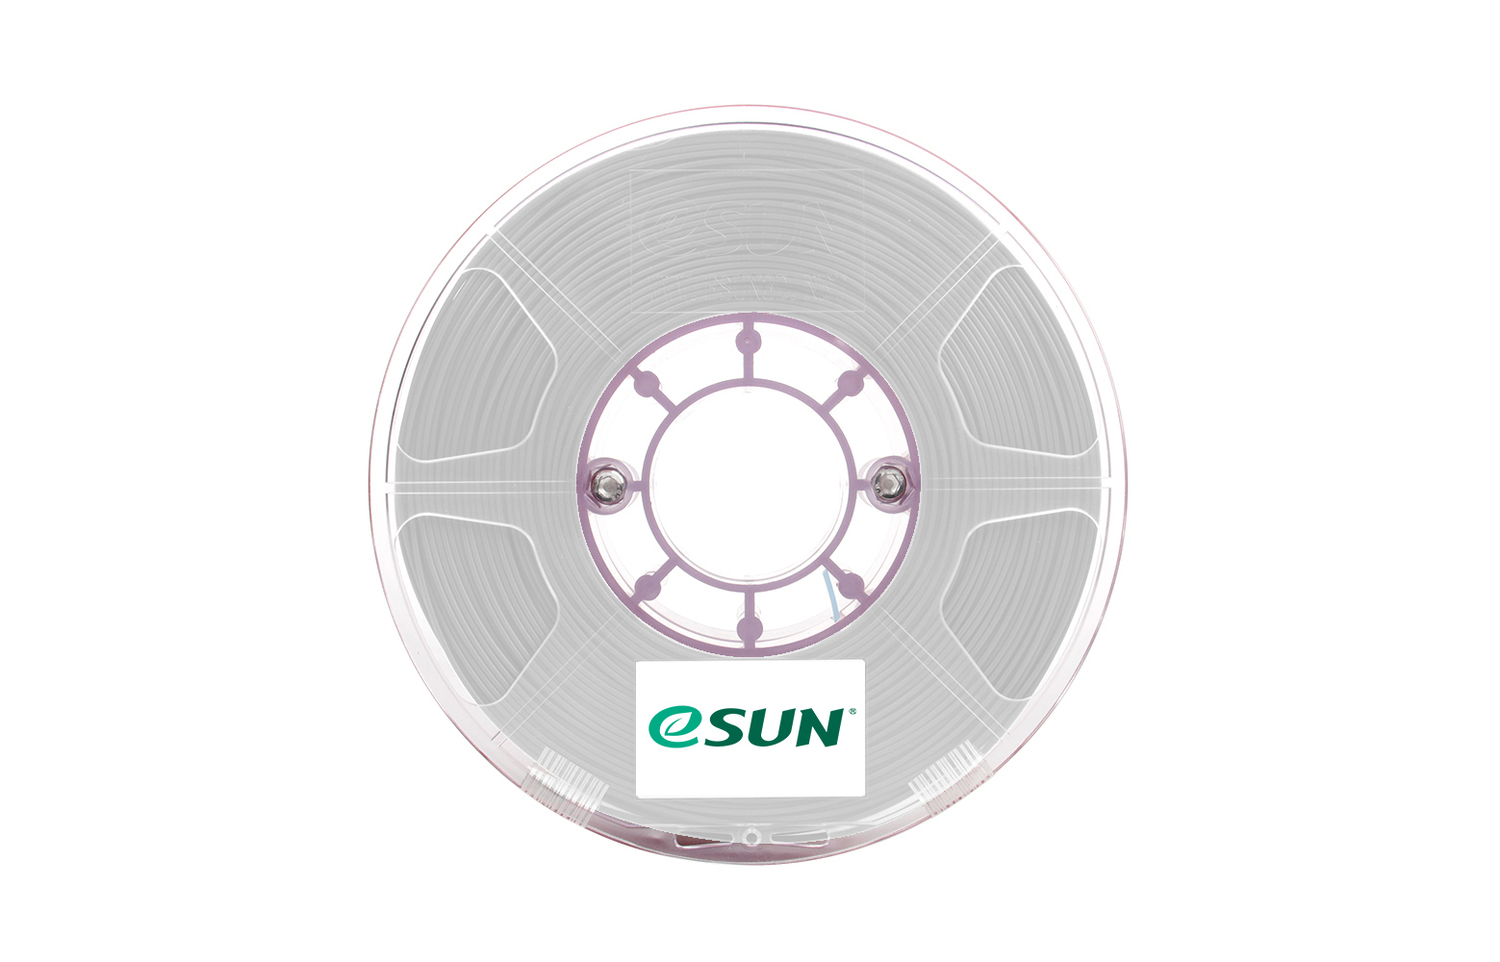 eSUN Polycarbonate 1.75mm 500g